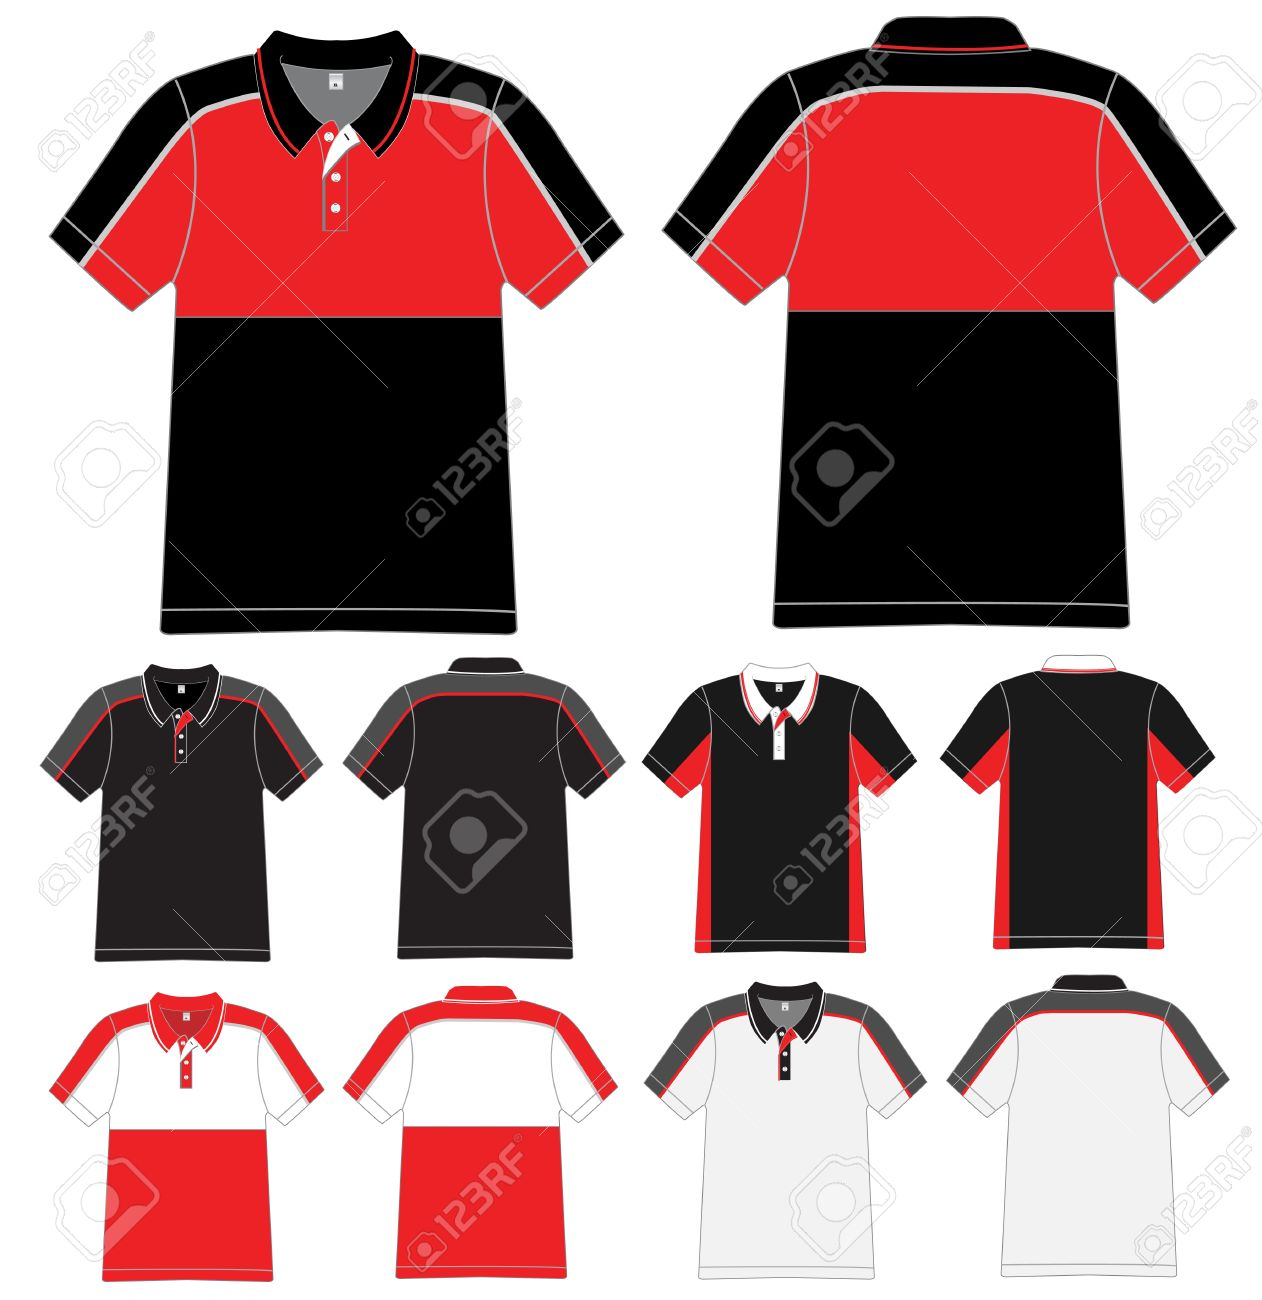 Polo Shirt Design Vector Template Royalty Free Cliparts, Vectors ...